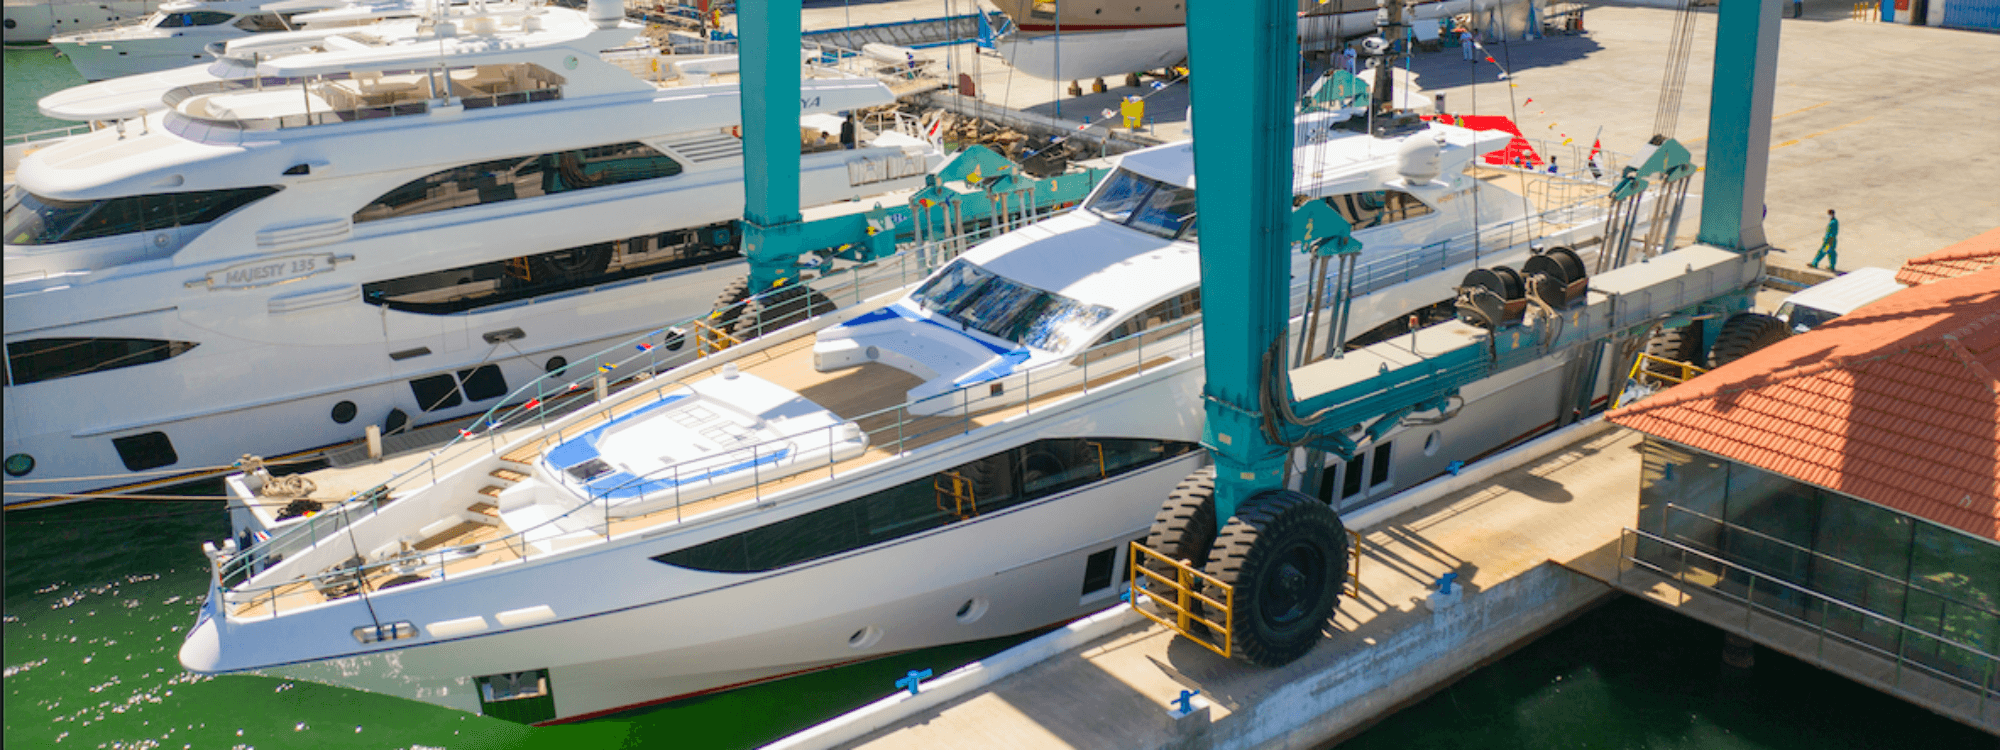 Gulf Craft launch the Majesty 122, a timeless superyacht built using Scott Bader resins, gelcoats and adhesives